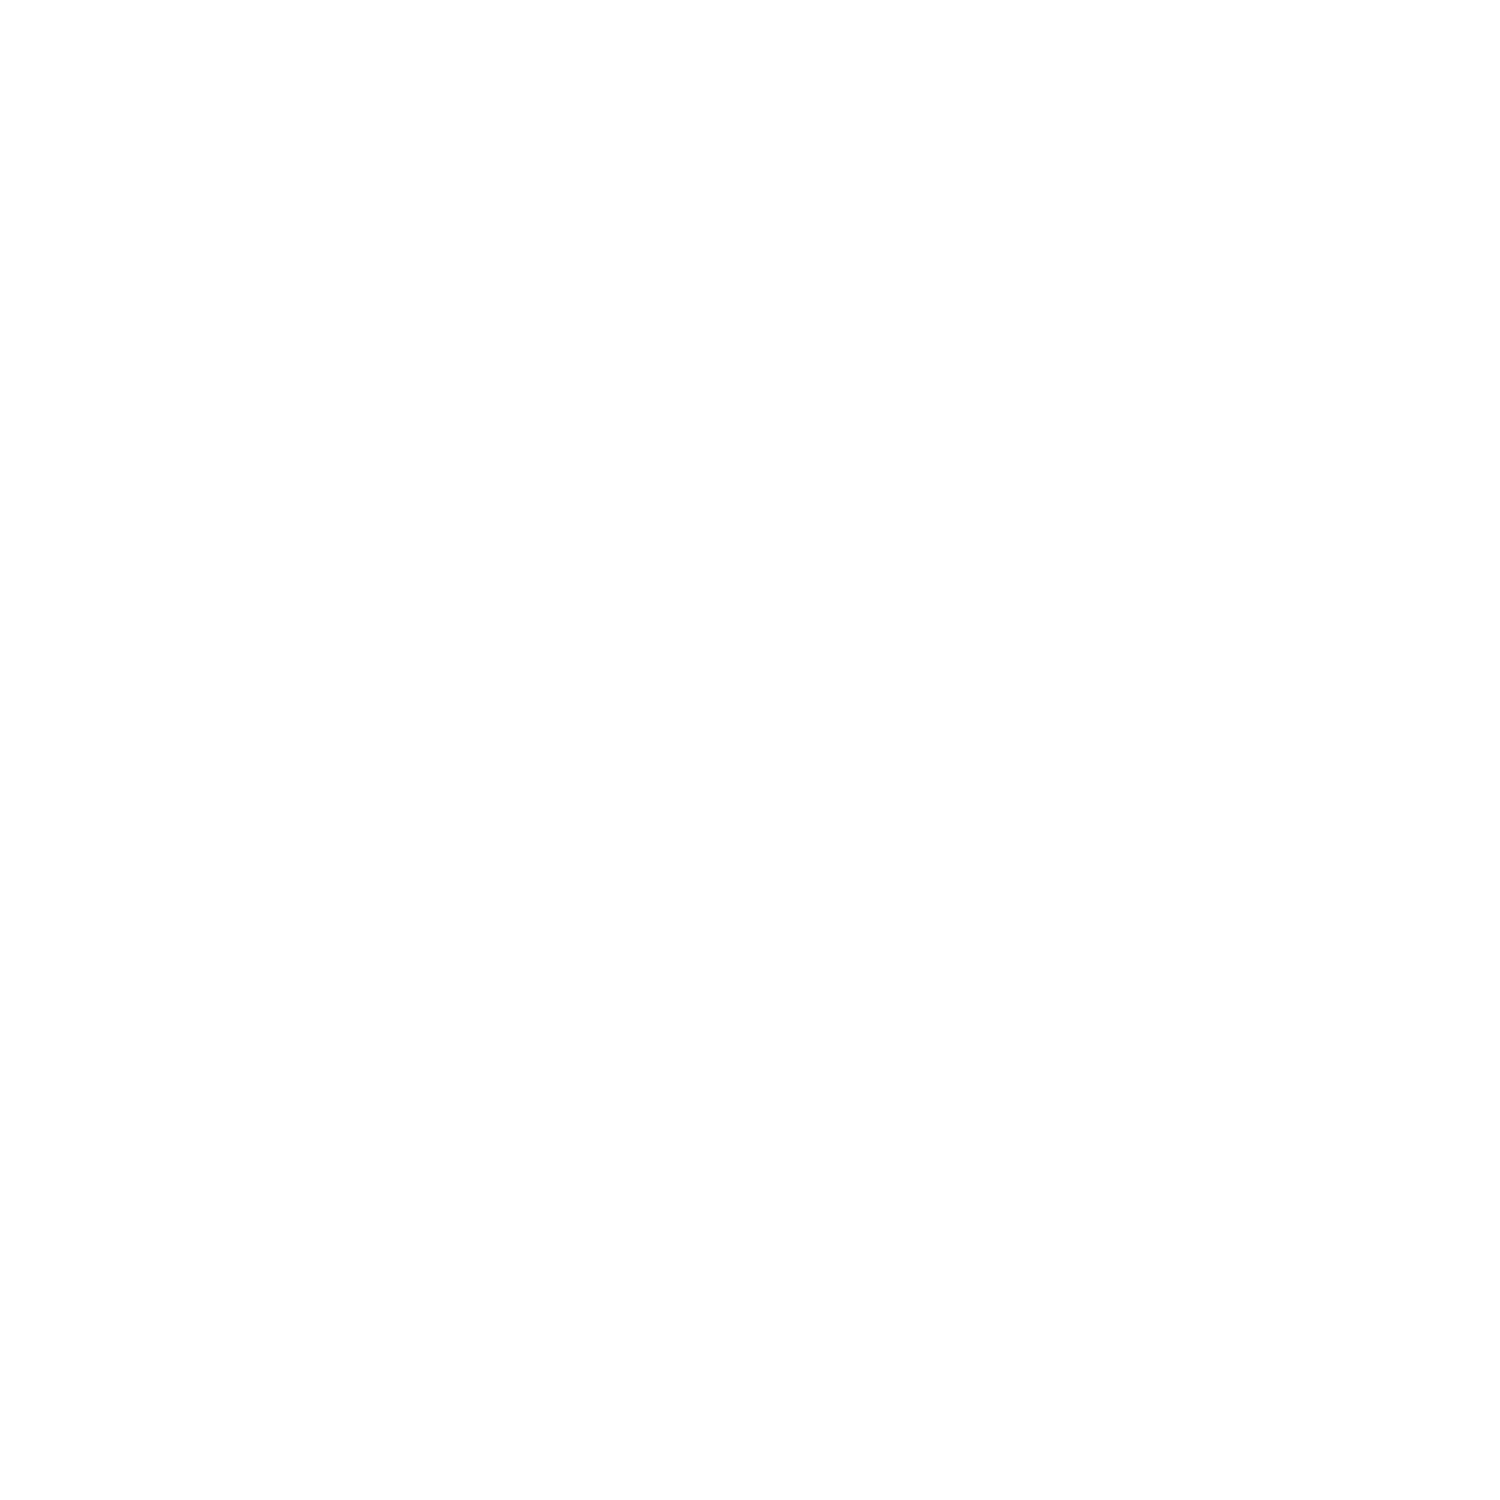 Fancy Free Nursery